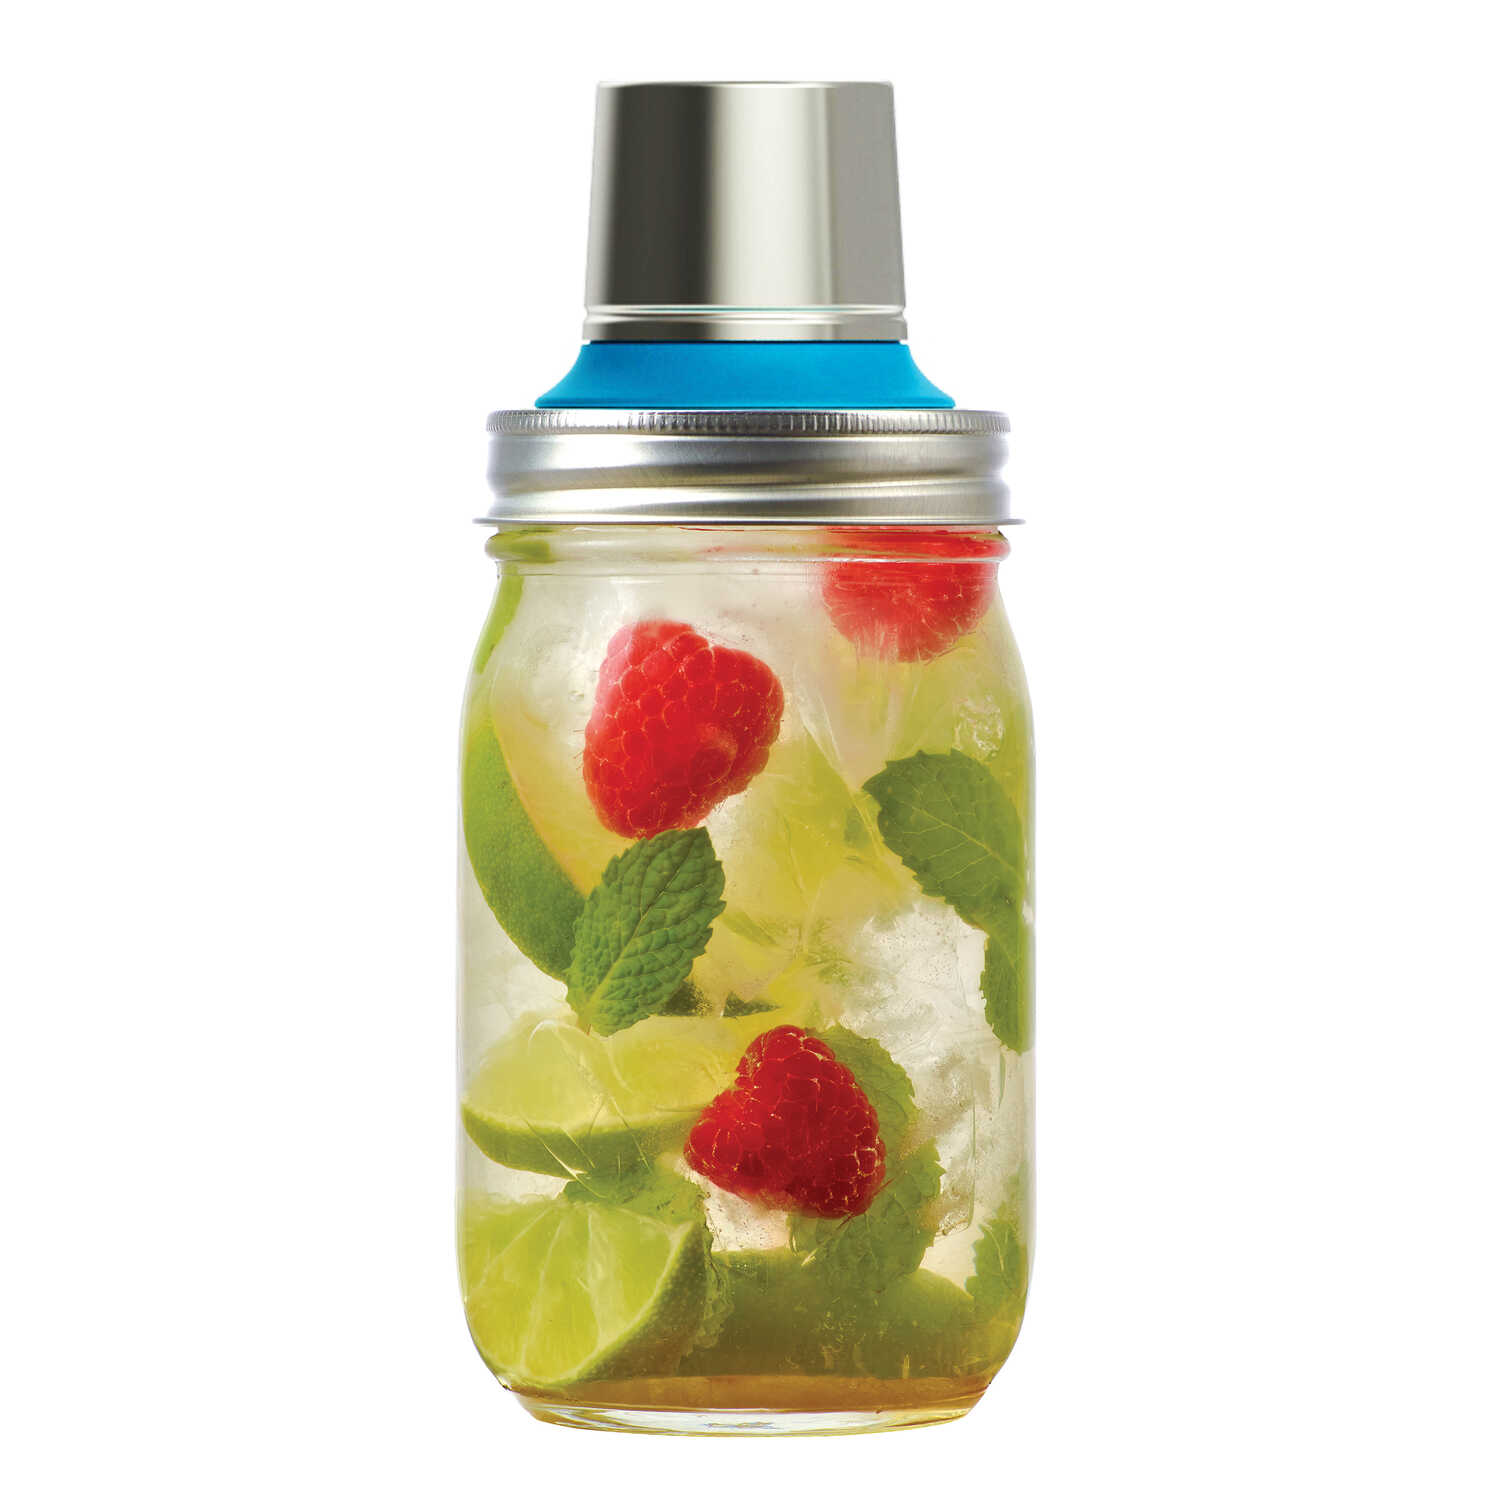 Jarware  Regular Mouth  Jar Cocktail Shaker  0.2 lb. 1 pk